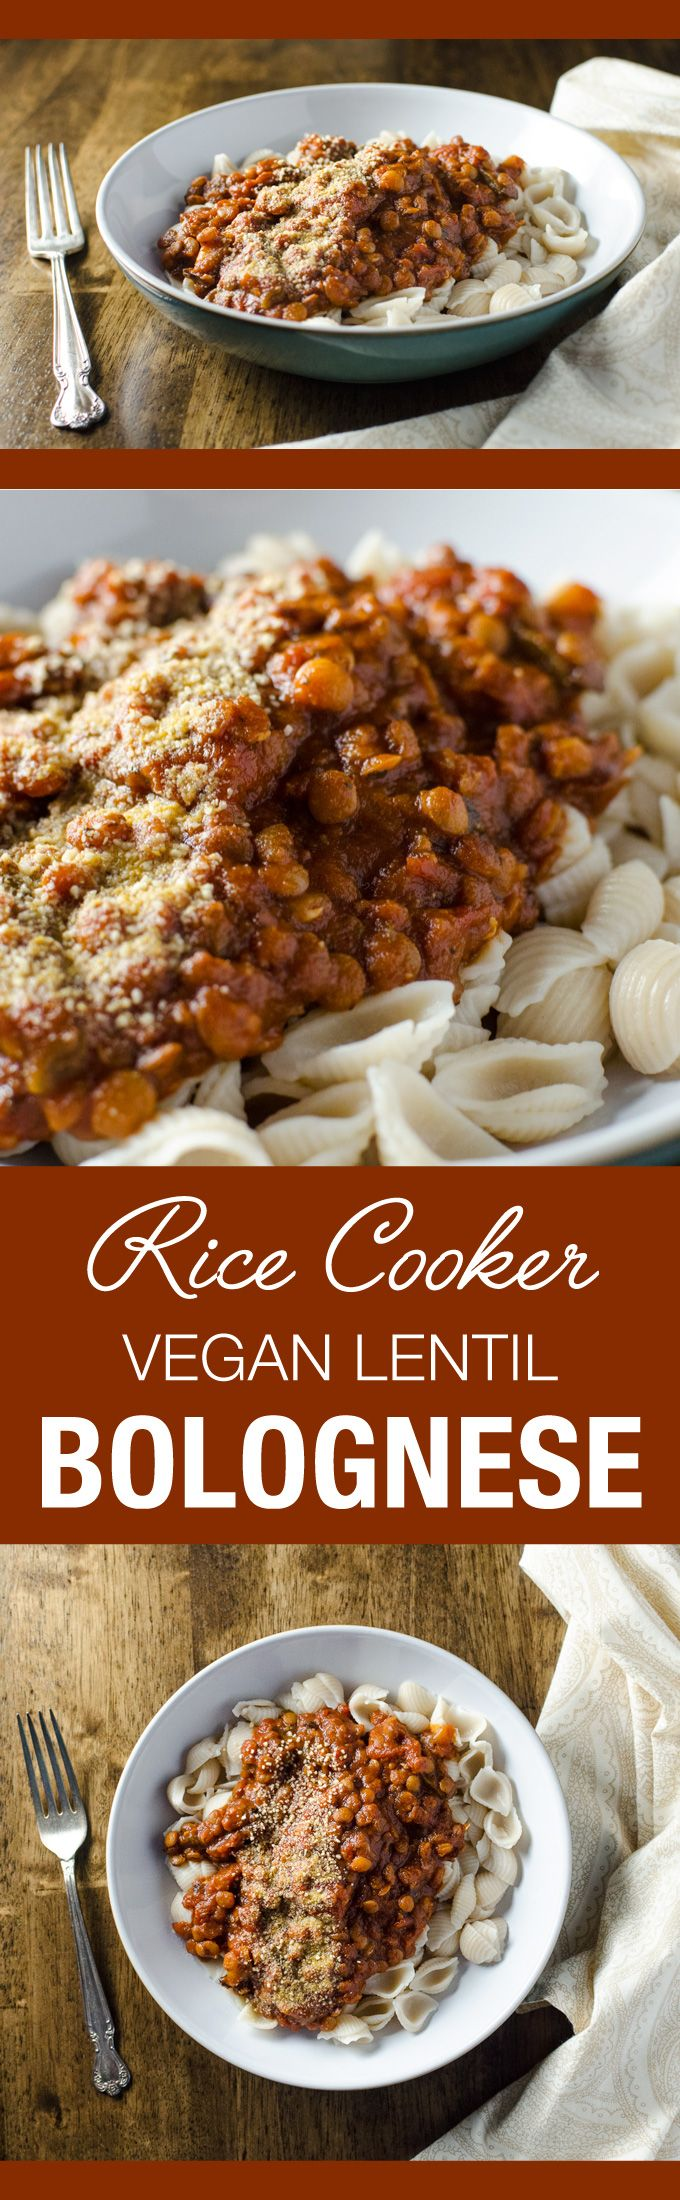 Rice Cooker Vegan Lentil Bolognese Sauce - made with simple ingredients and easy to prepare, this plant-based recipe offers a pleasing meaty texture without the meat! | VeggiePrimer.com